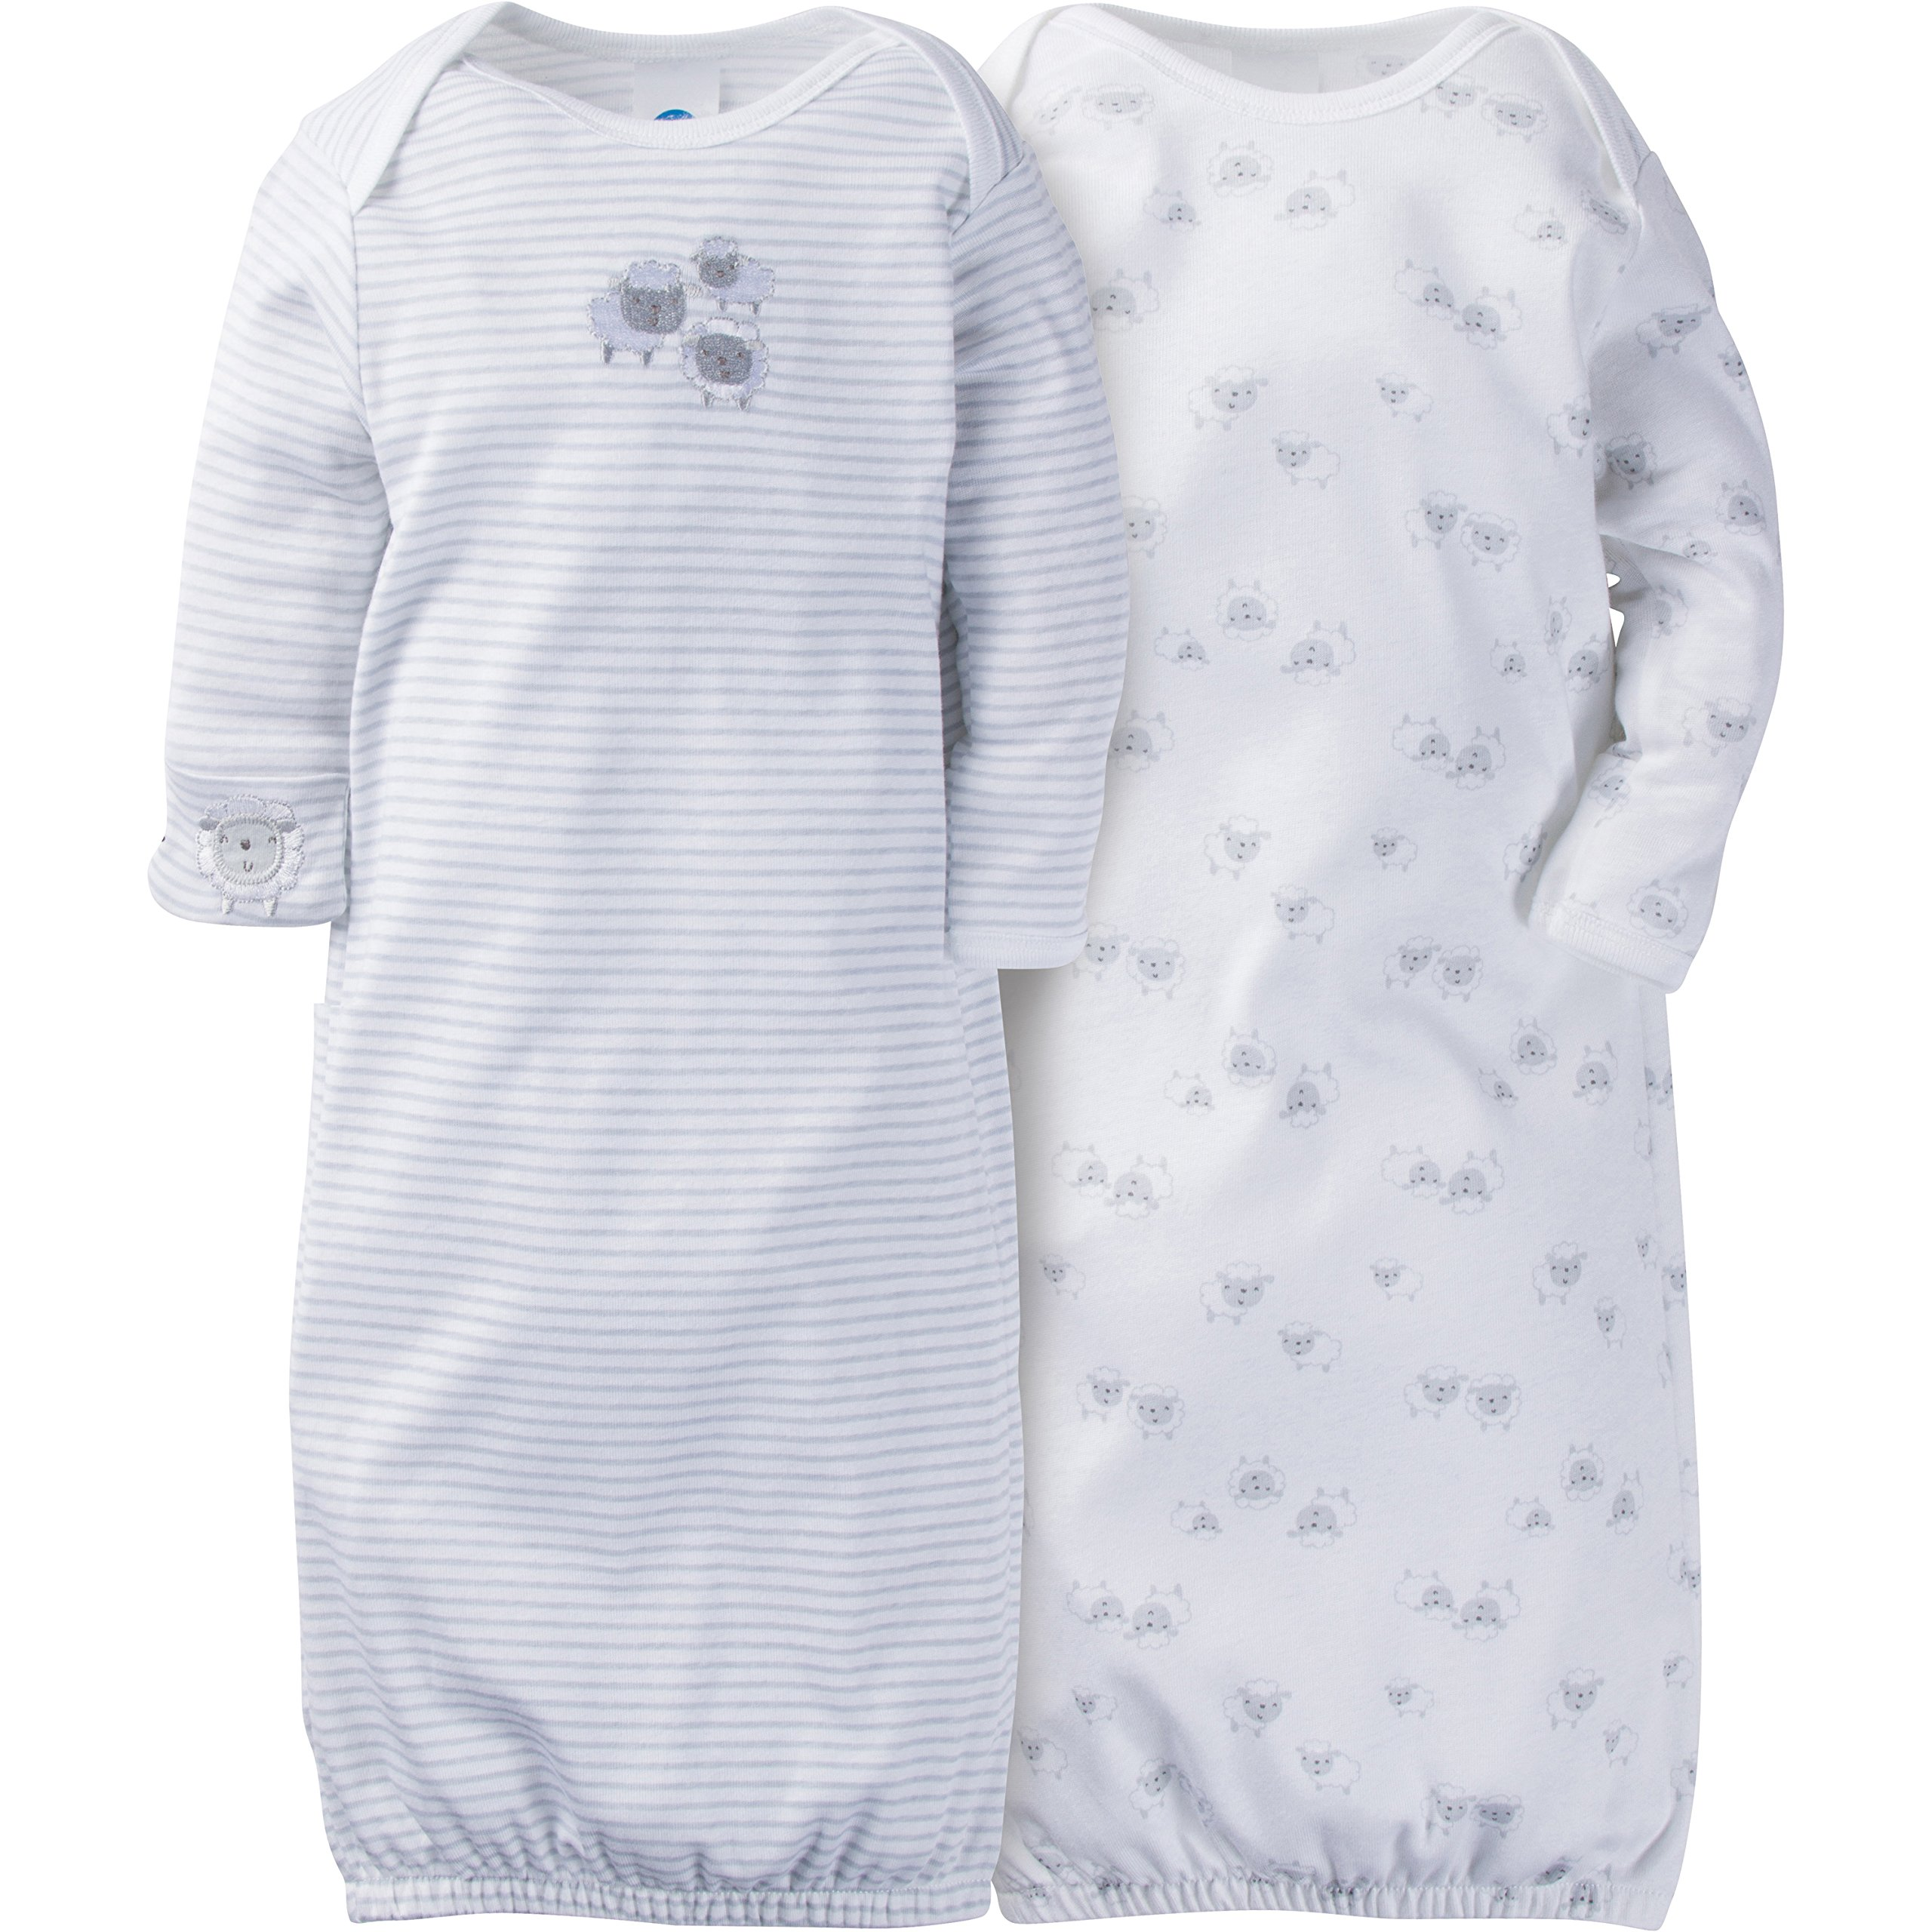 Gerber Baby Girls 2 Pack Gown, Lil' Lamb, 0-6 Months